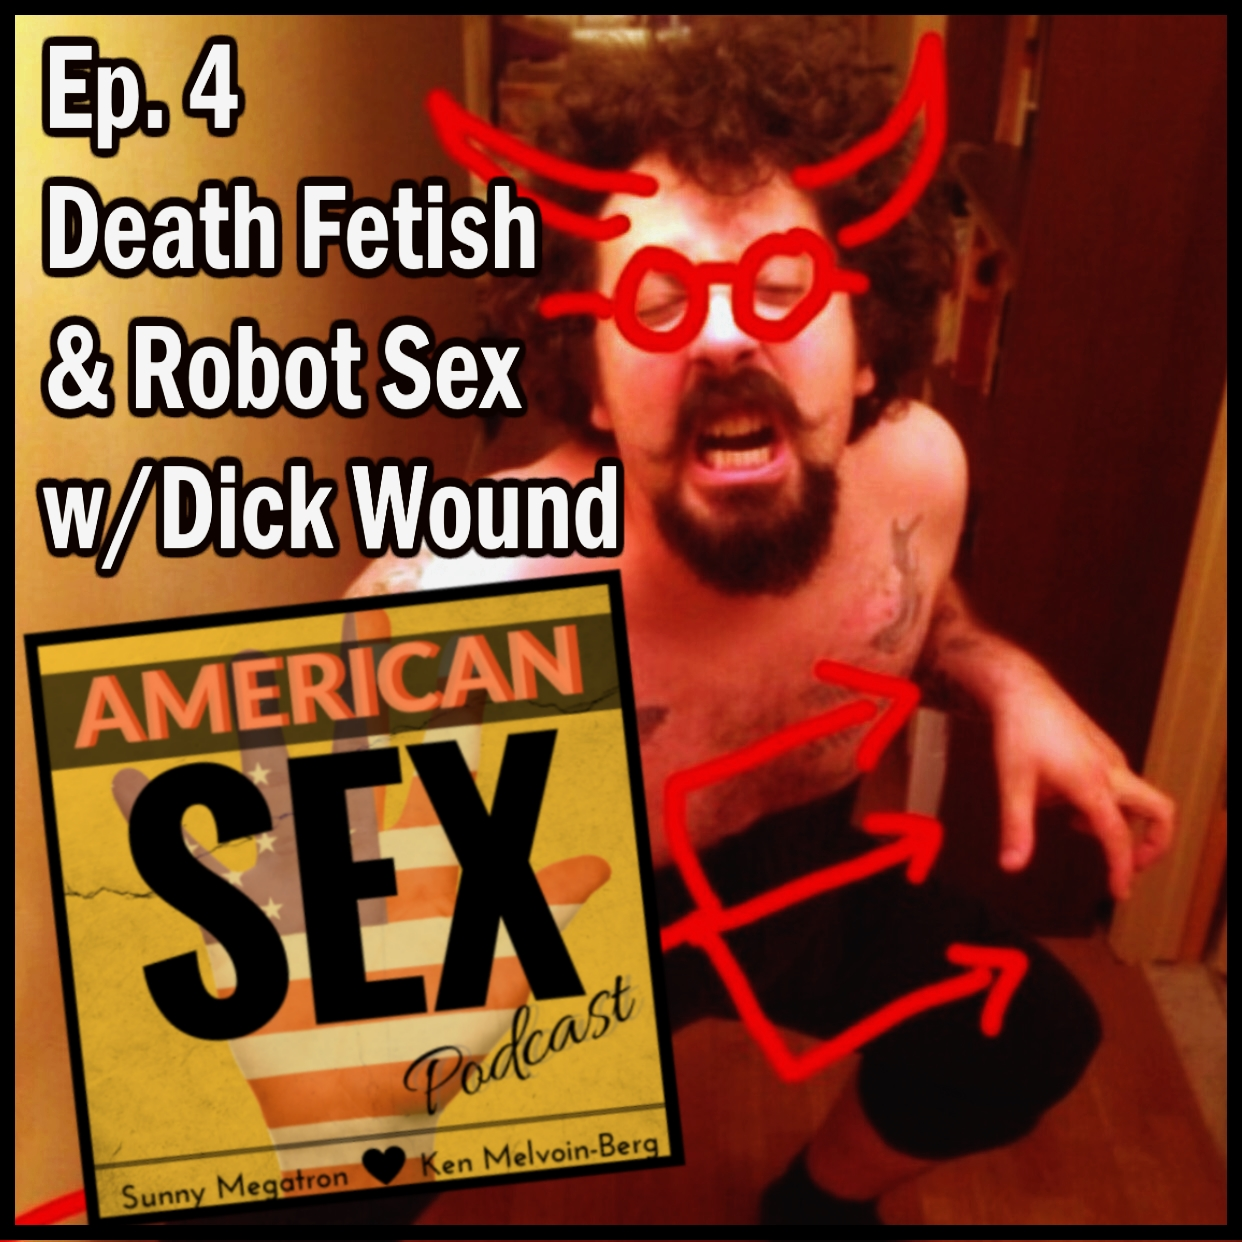 Dick Wound from Off the Cuffs BDSM Podcast